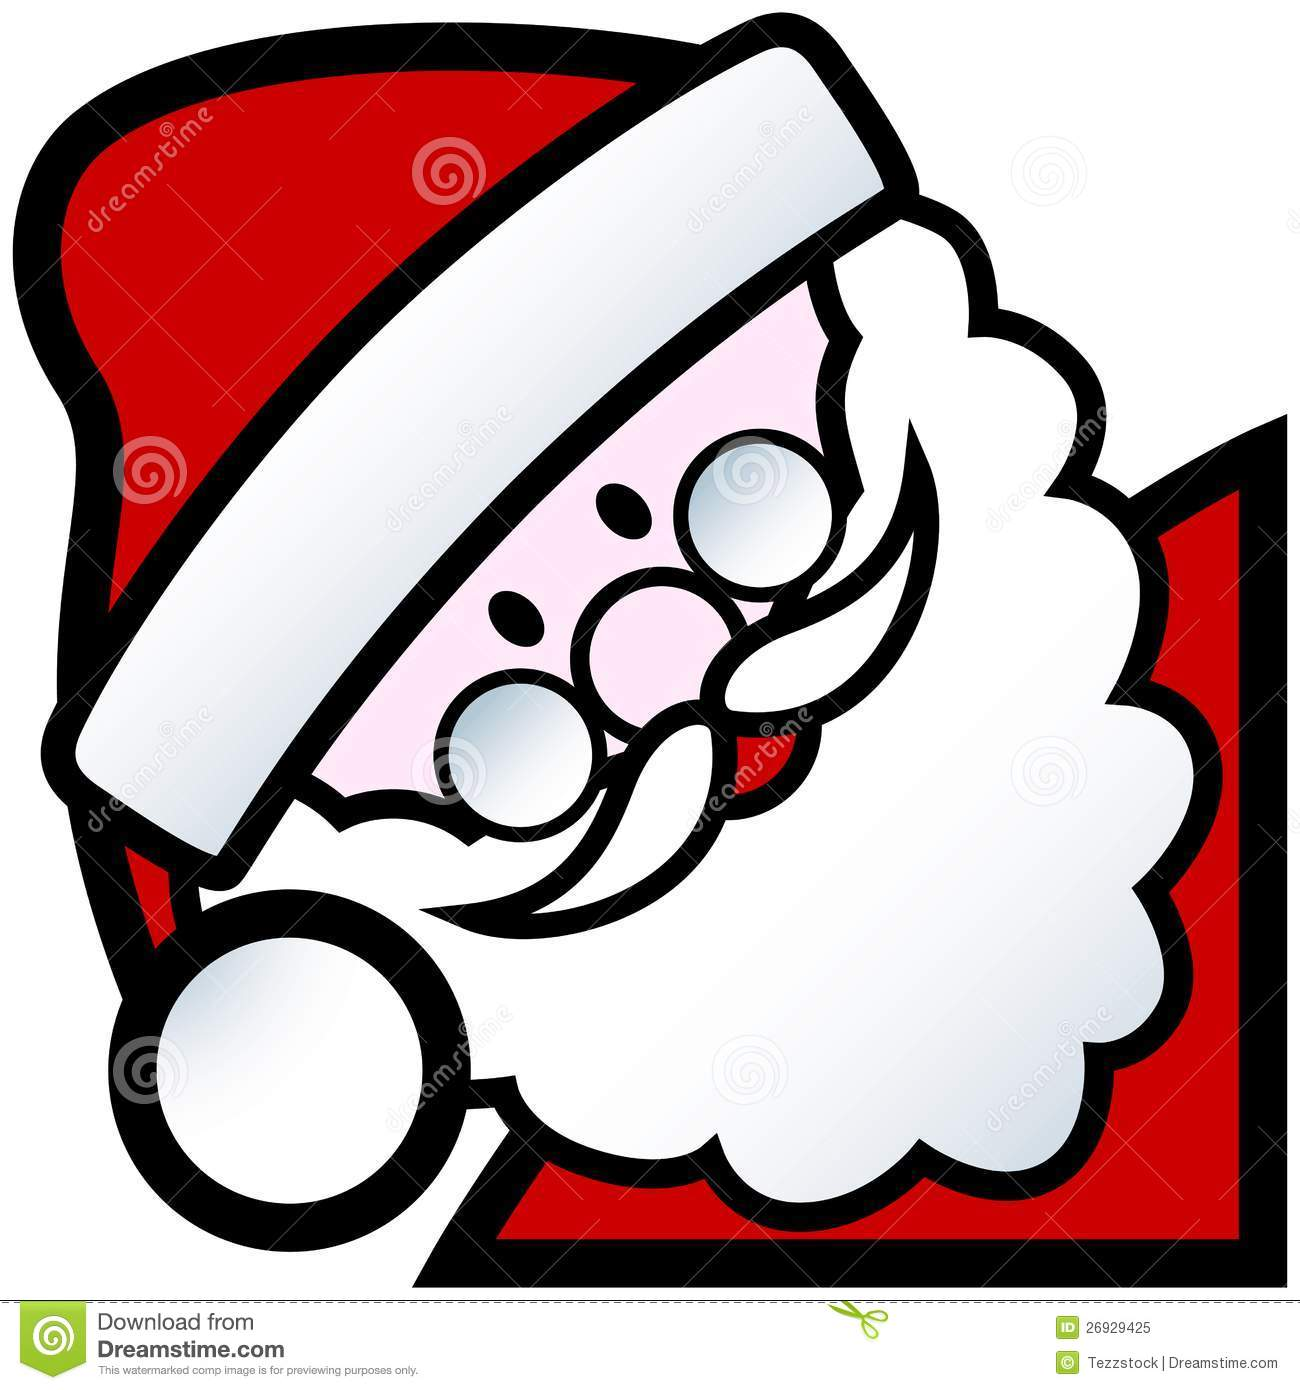 Santa cartoon stock vector. Illustration of santa ...